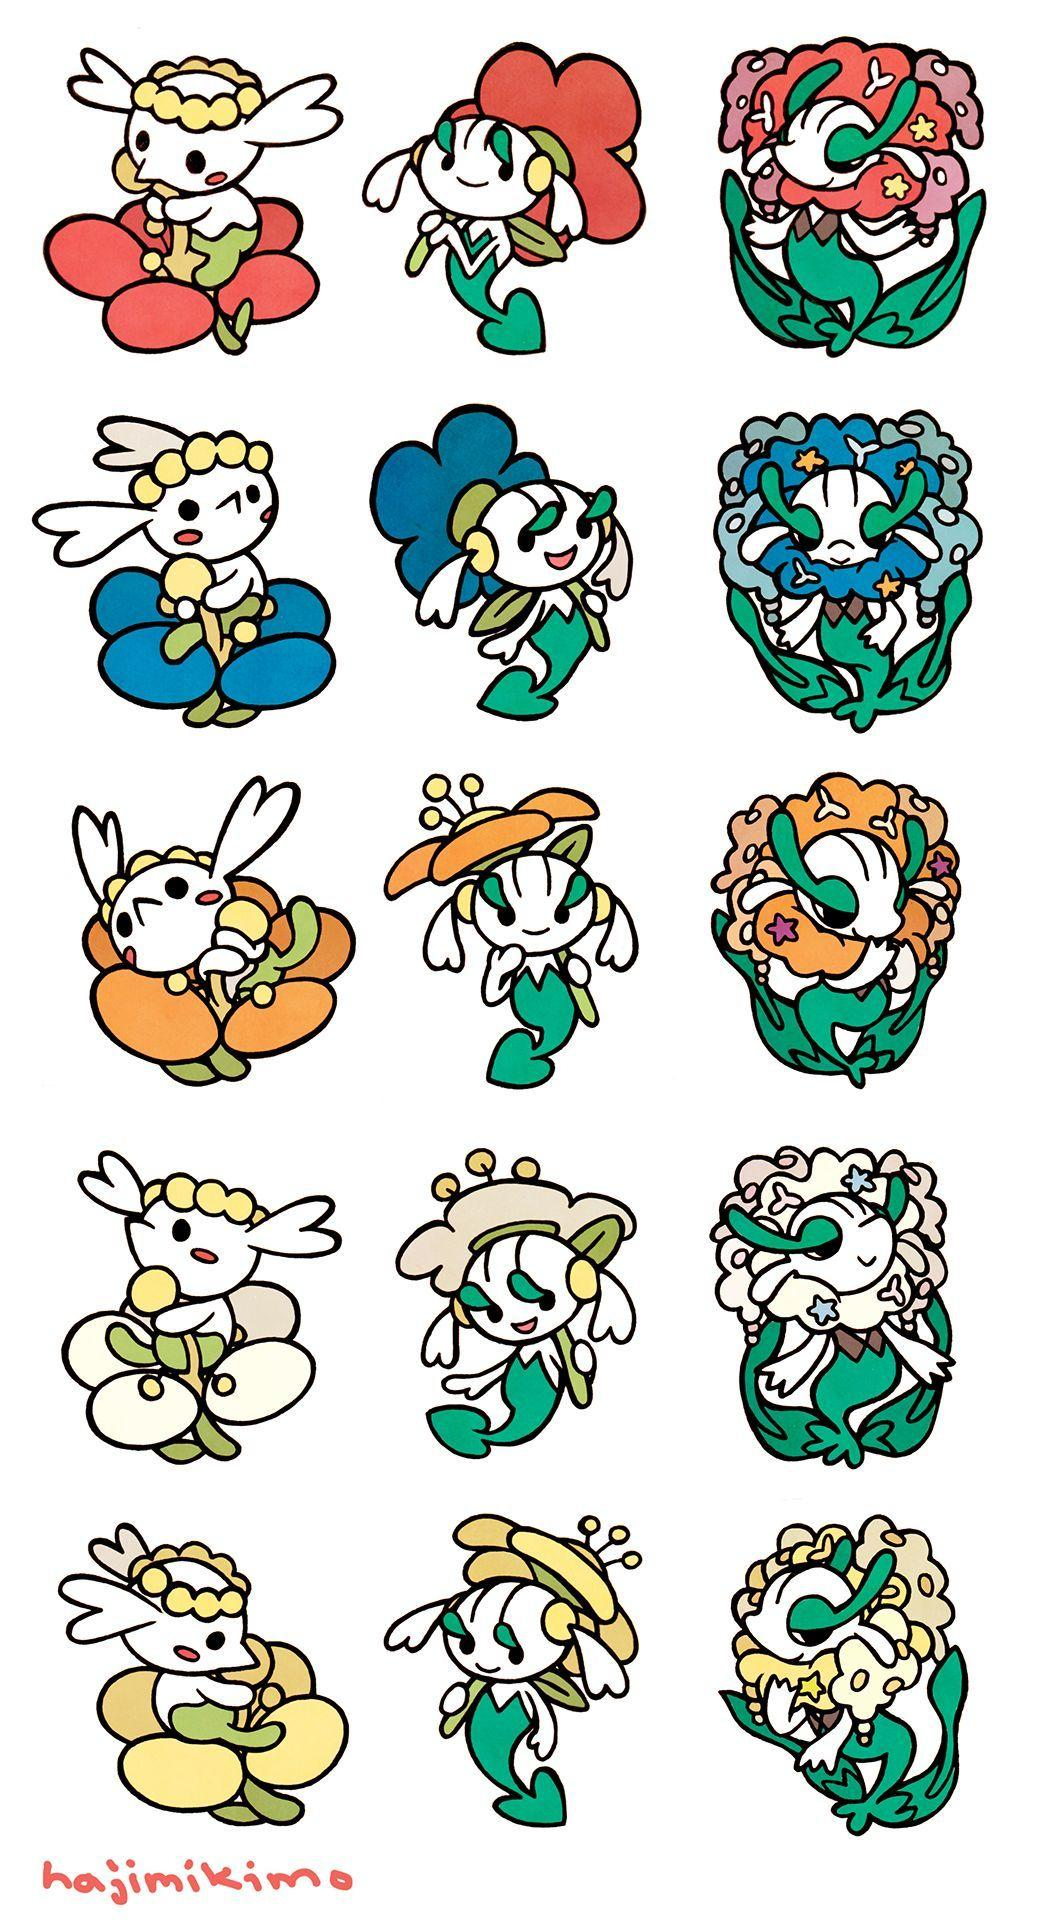 Flabebe, Floette and Floreges | Willow | Pinterest | Pokémon and ...